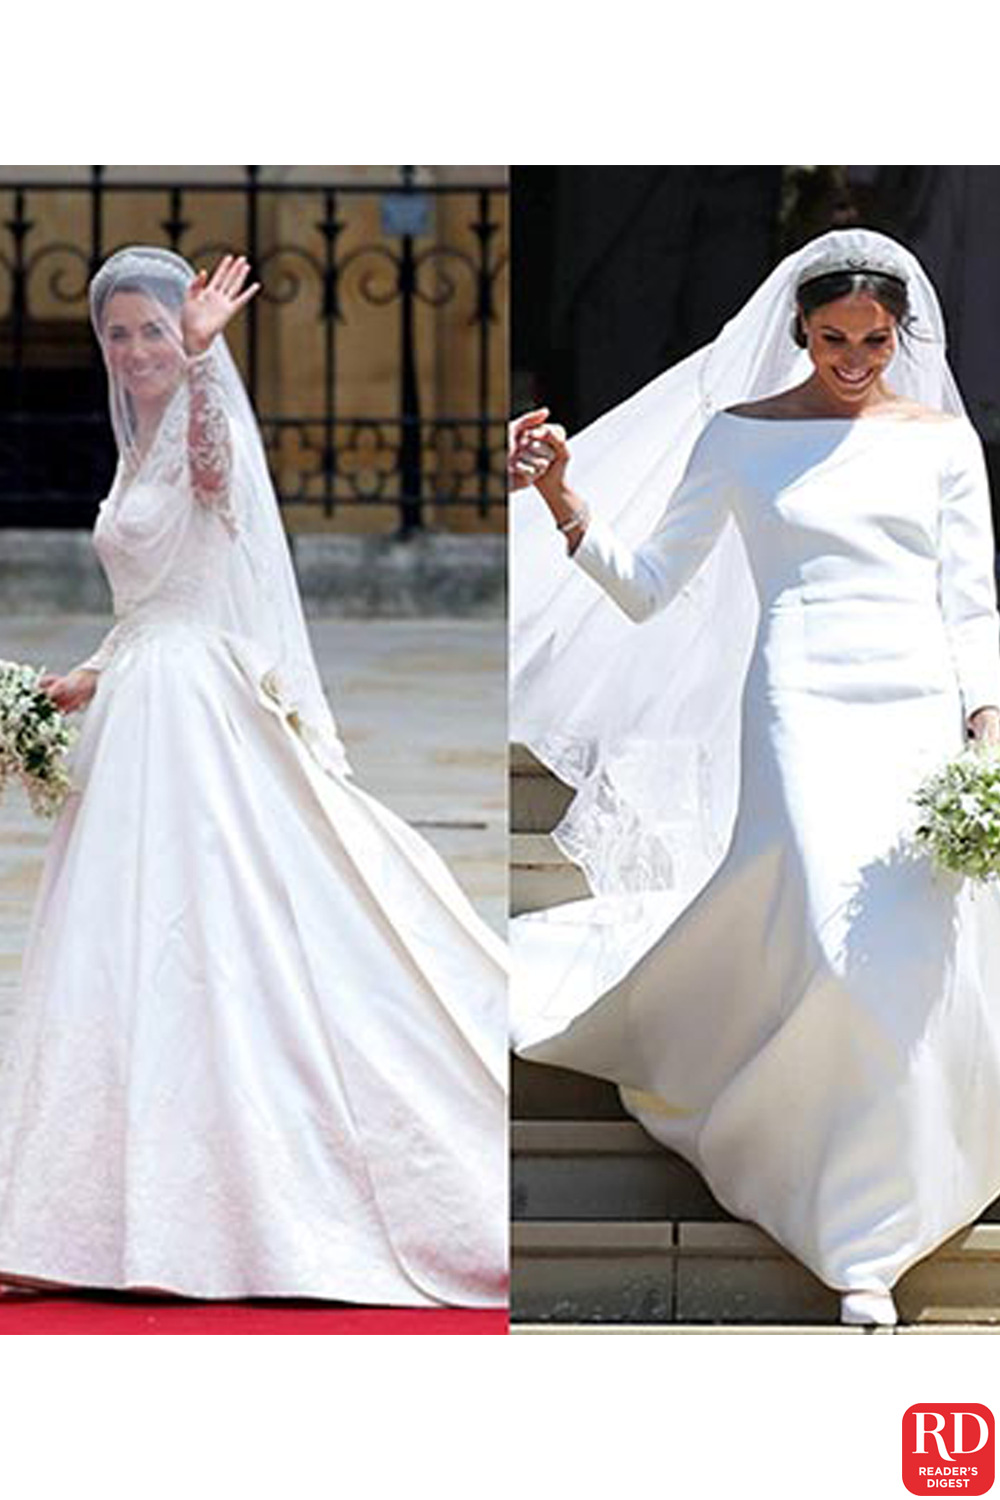 The Fragrances Queen Elizabeth Princess Diana Kate Middleton And Meghan Markle Wore On Their Wedding Days Wh In 2020 Princess Diana Kate Middleton Beautiful Bride